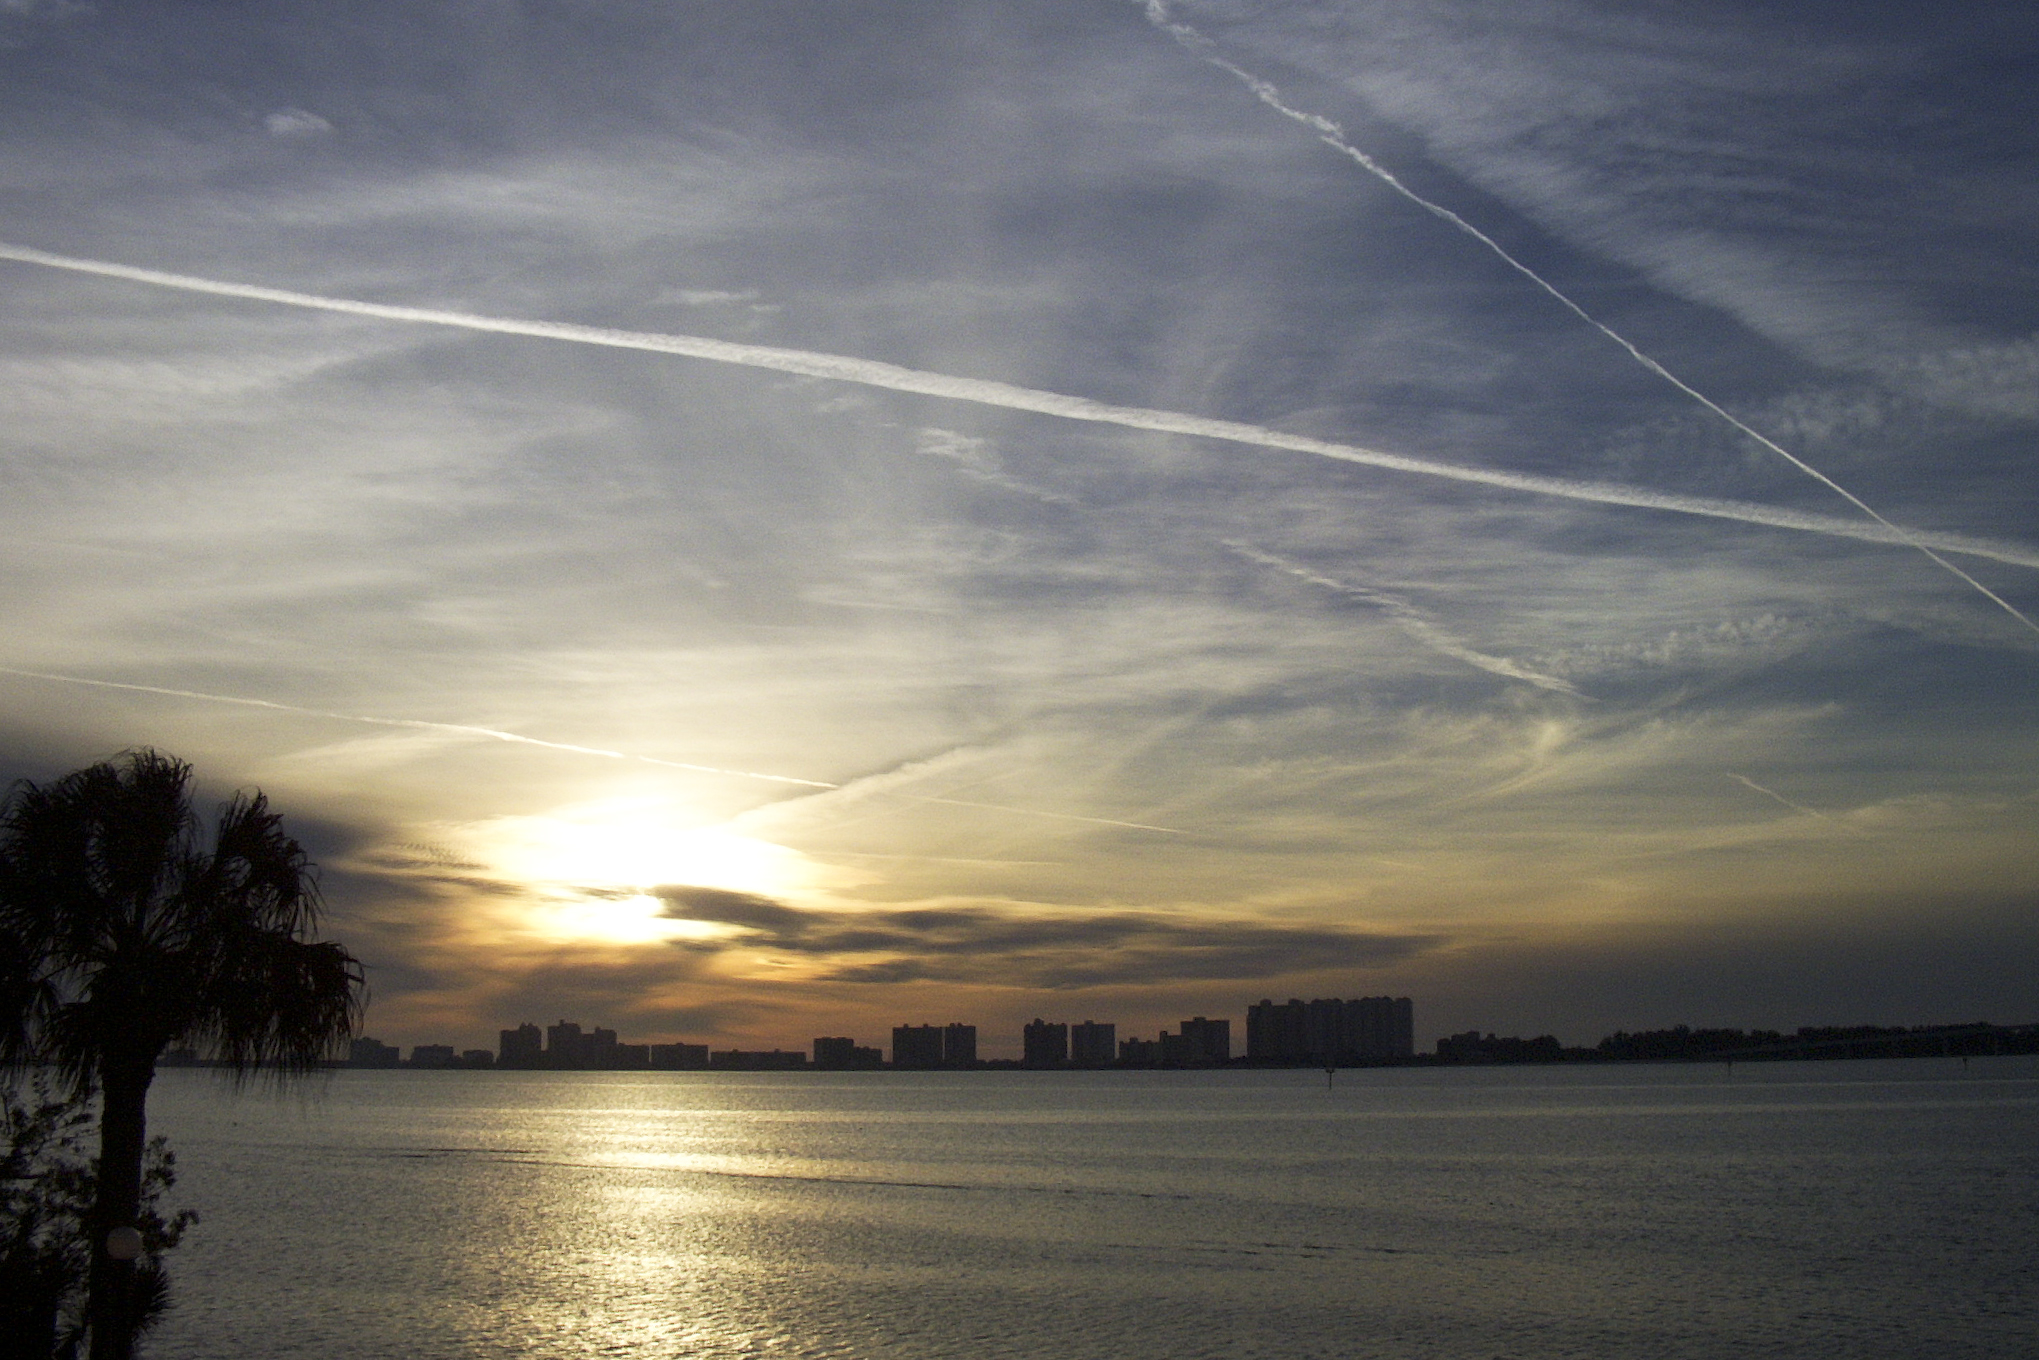 Gulf Coast Chem Trails